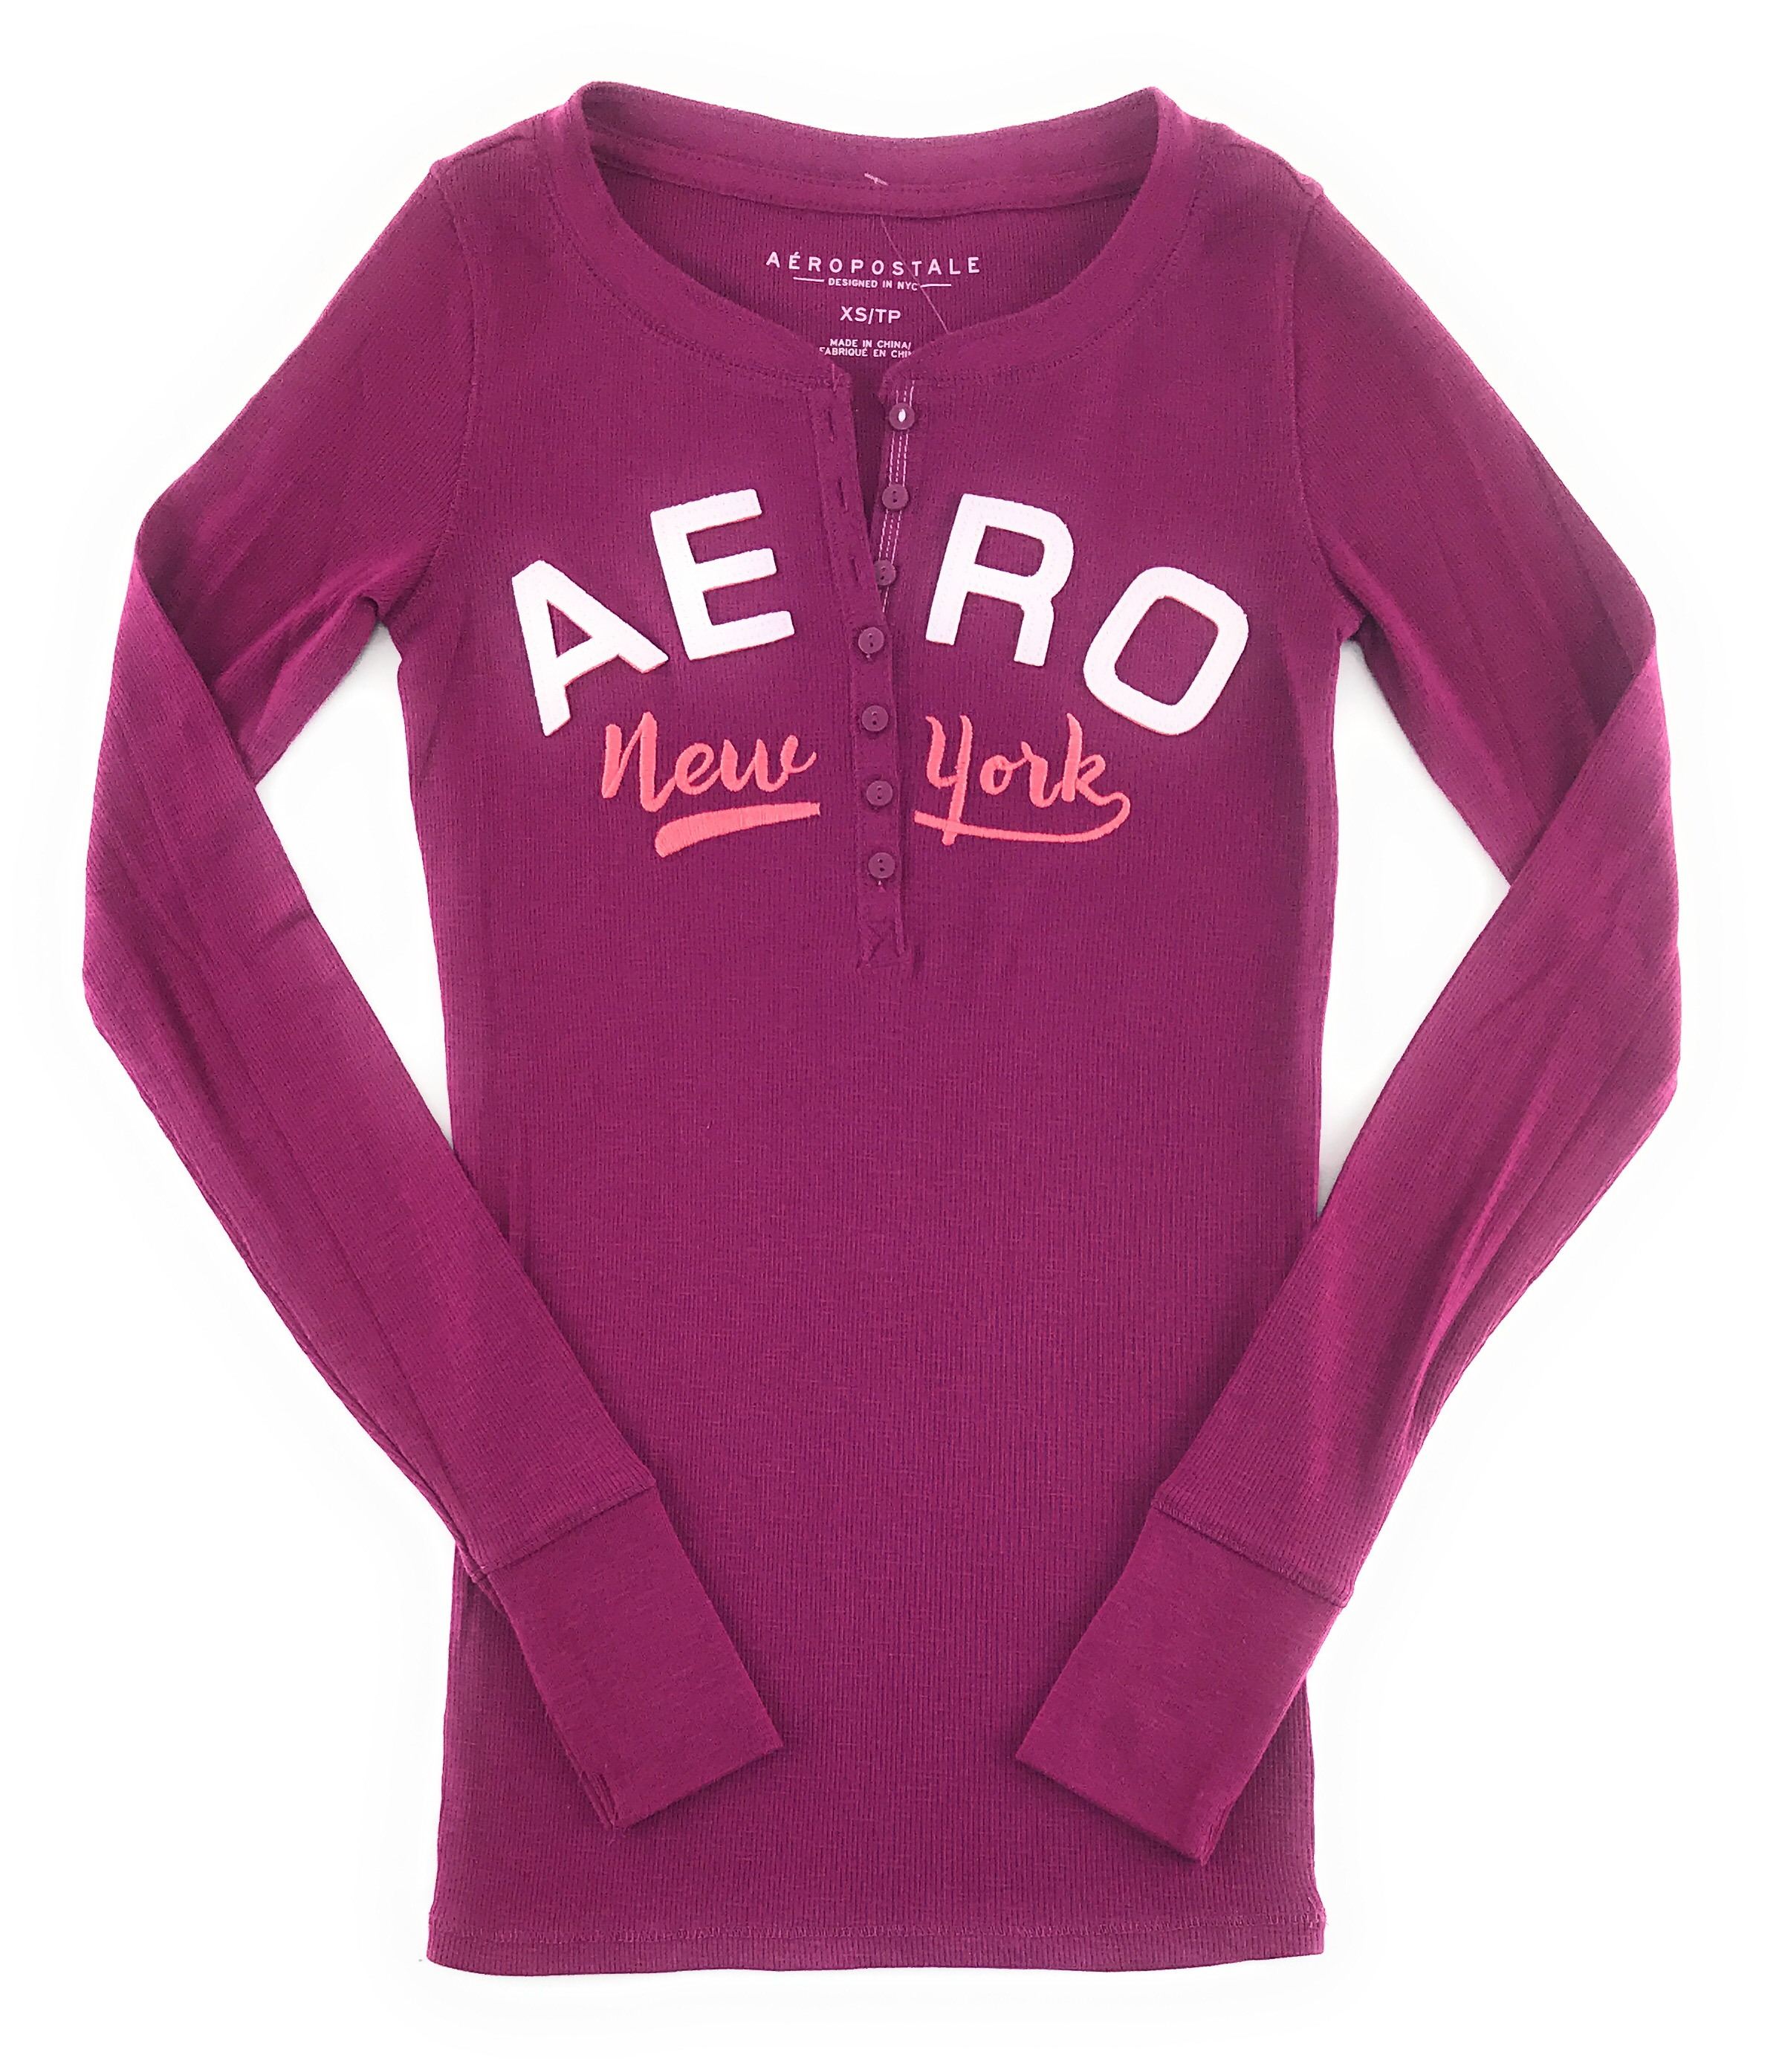 AEROPOSTALE-WOMENS-LONG-SLEEVE-HENLEY-T-SHIRT-BUTTONS-APPLIQUE-EMBROIDERED-LOGO thumbnail 12